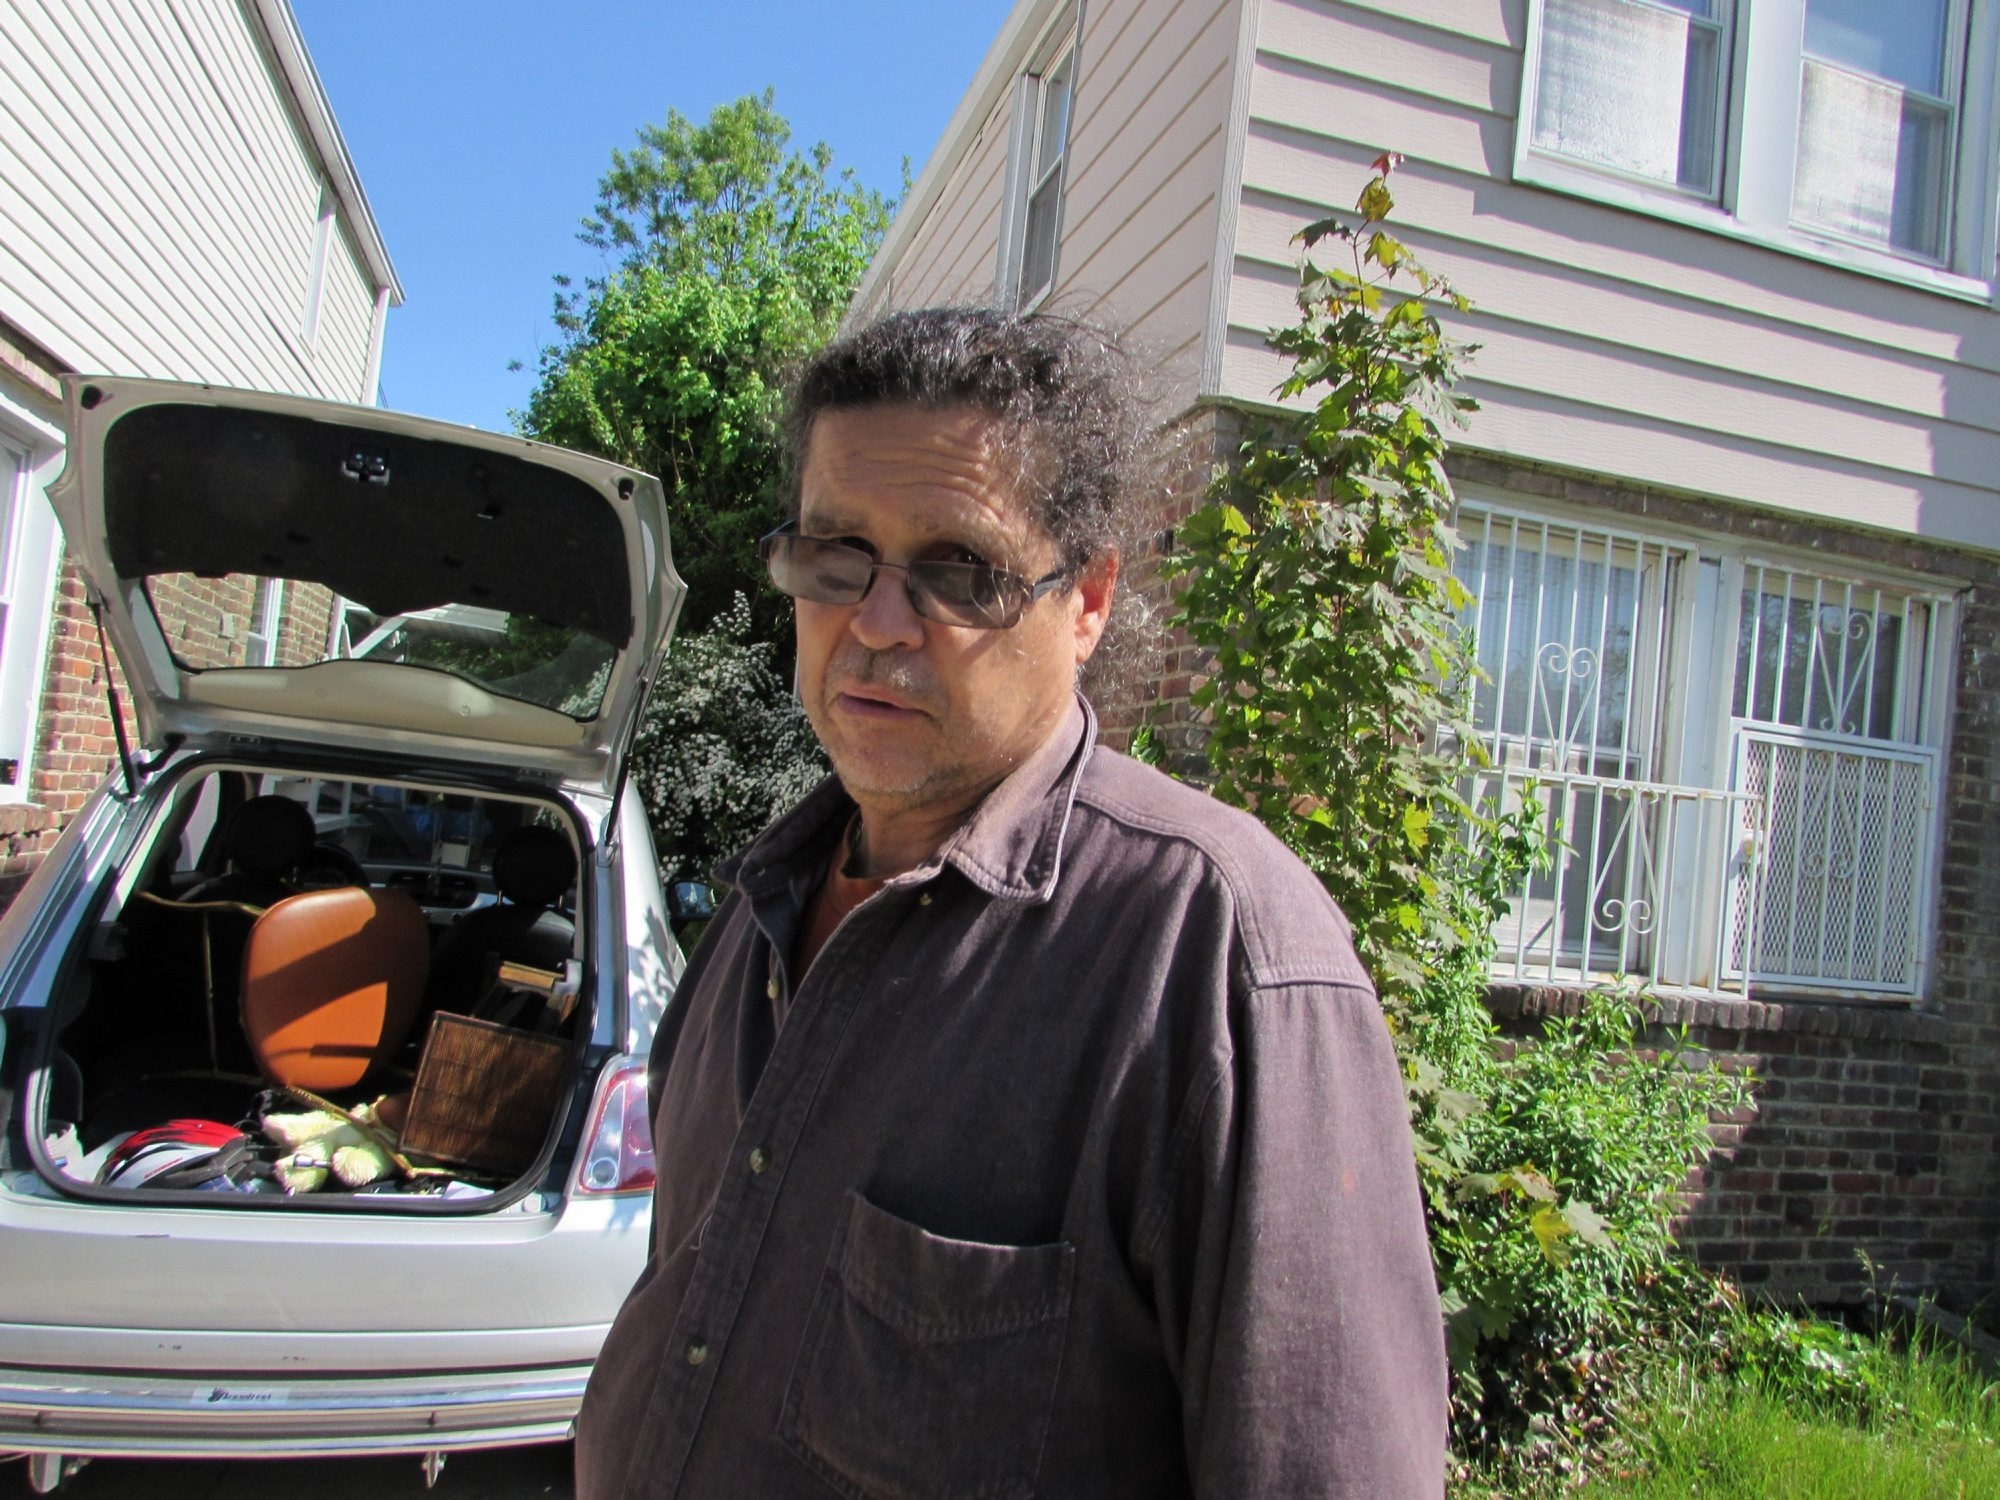 Retired letter carrier Steven Ramos packs up his modest house in Queens to move to central Florida, where he estimates his living costs will drop by 80 percent. Florida, a perennial favorite for retirees, has seen retirement moves double since the recession ended.